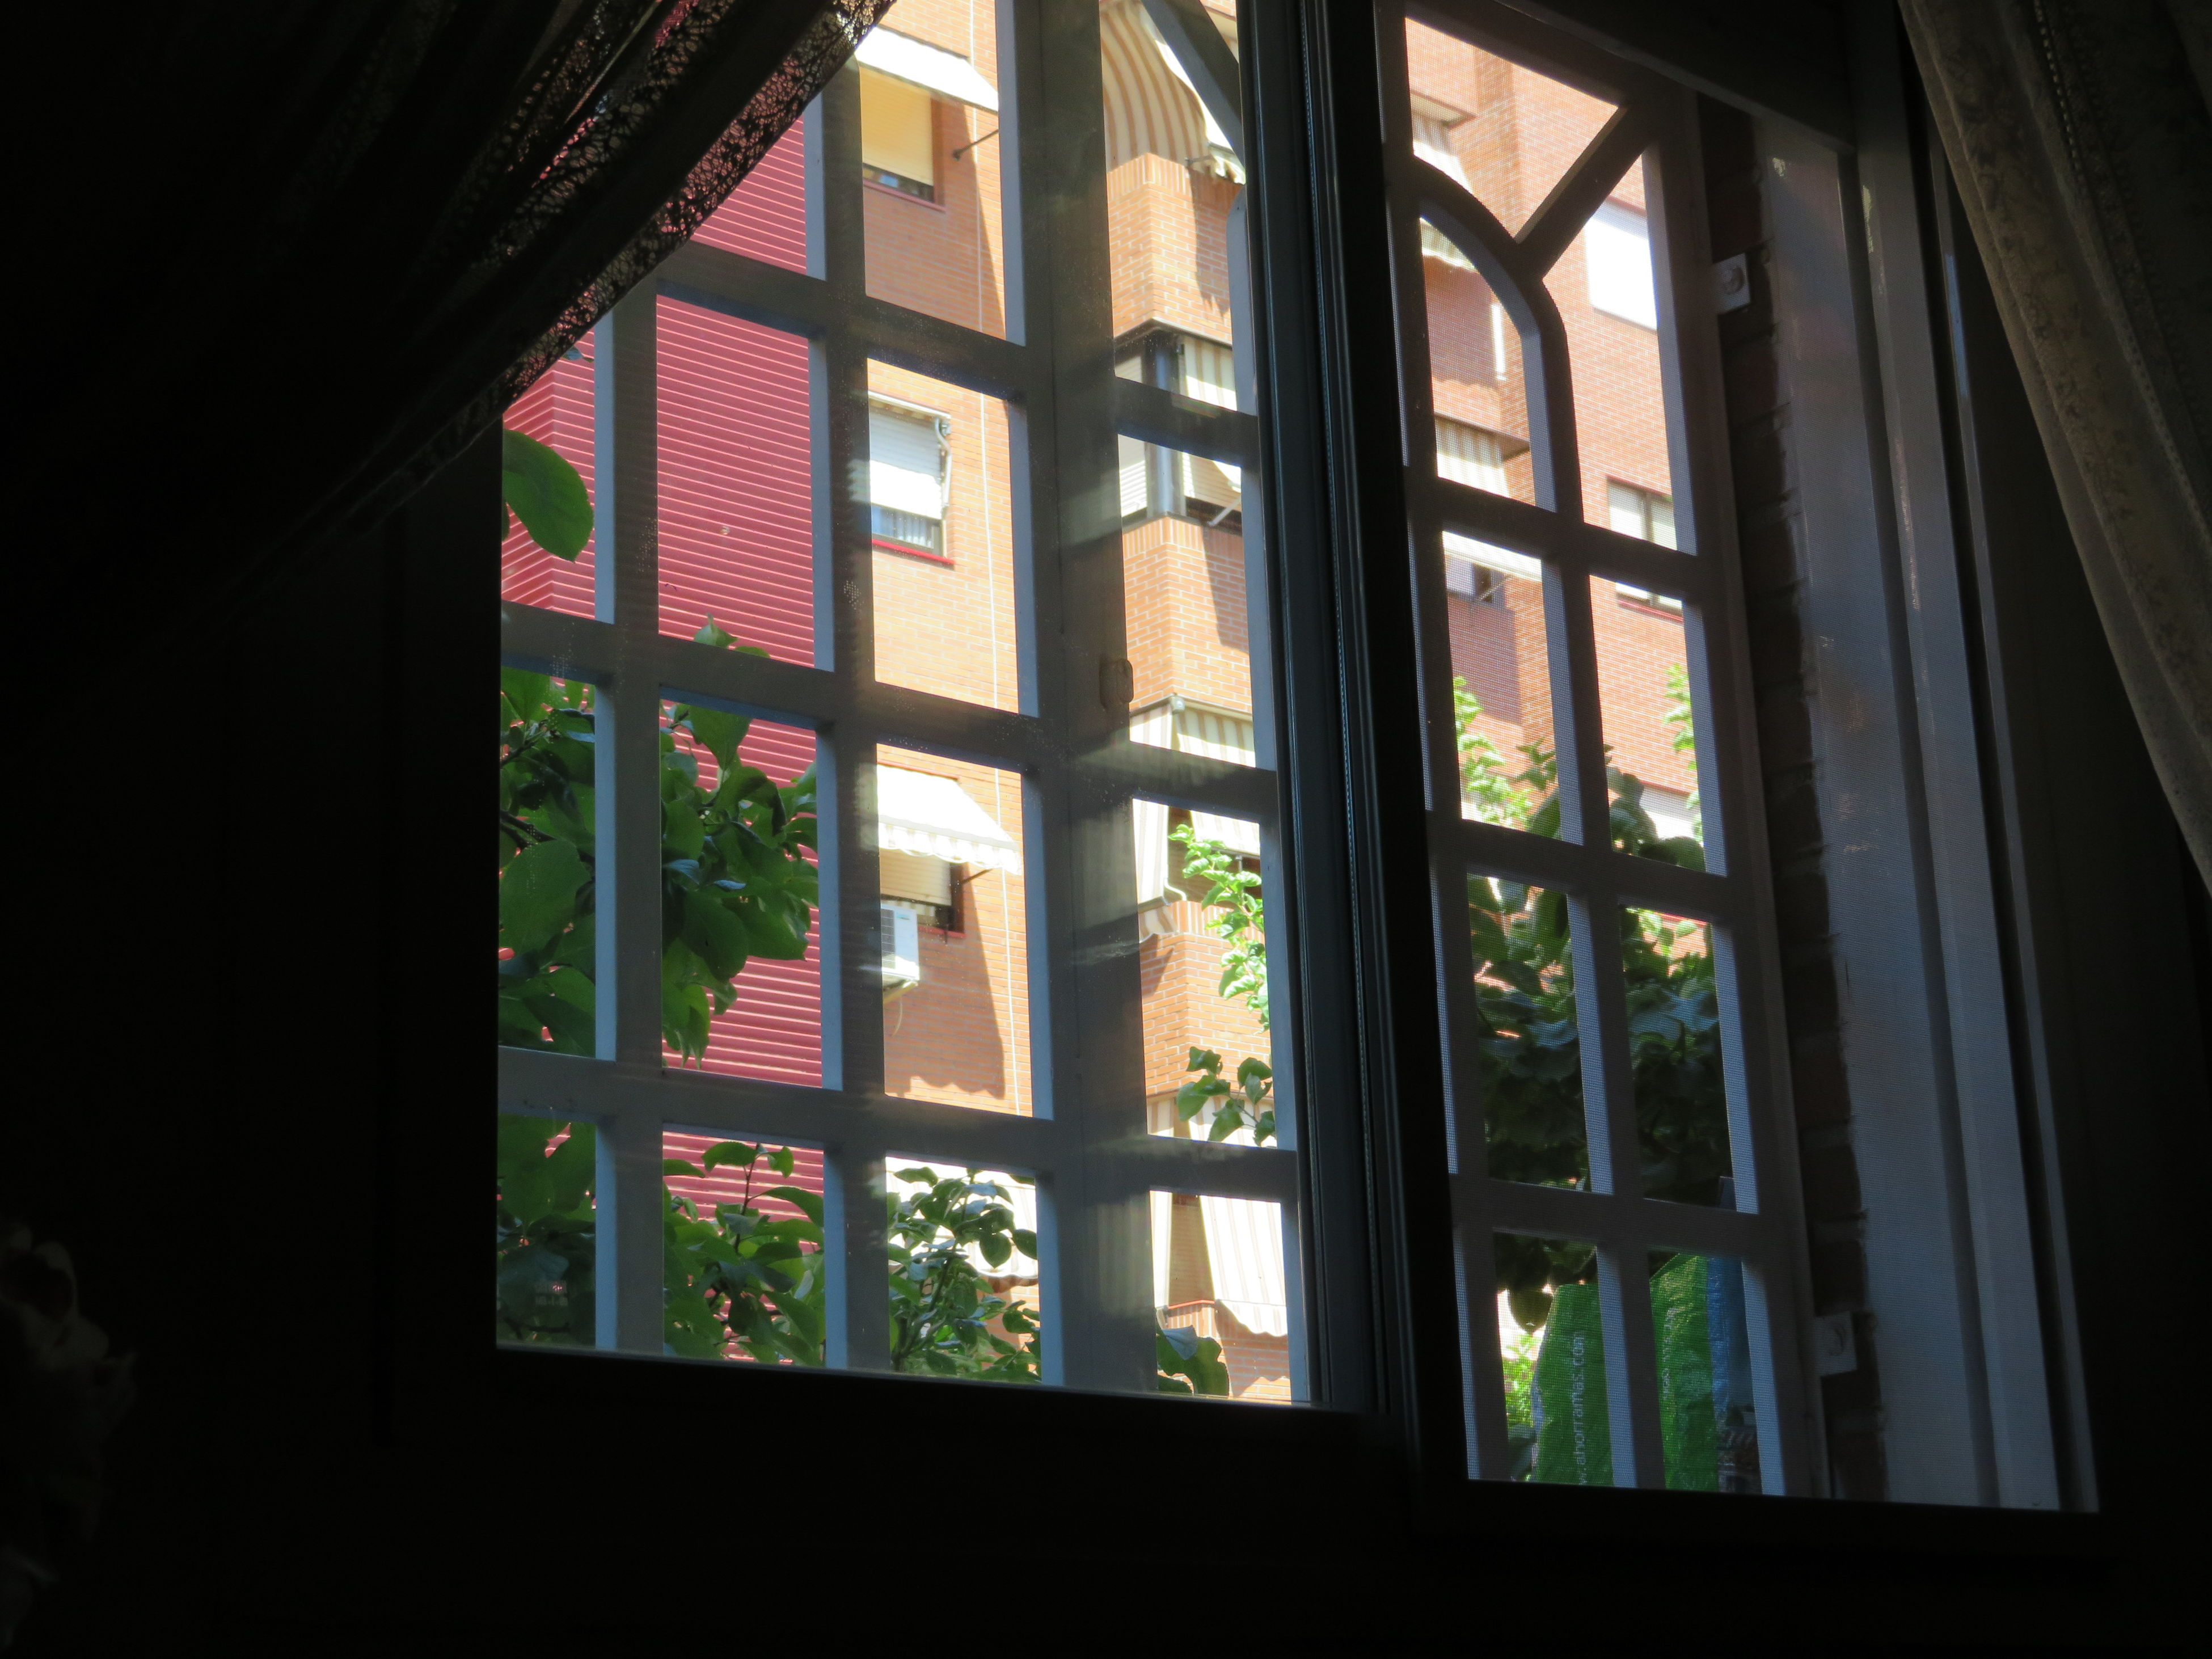 window, indoors, glass - material, day, no people, architecture, built structure, curtain, tree, close-up